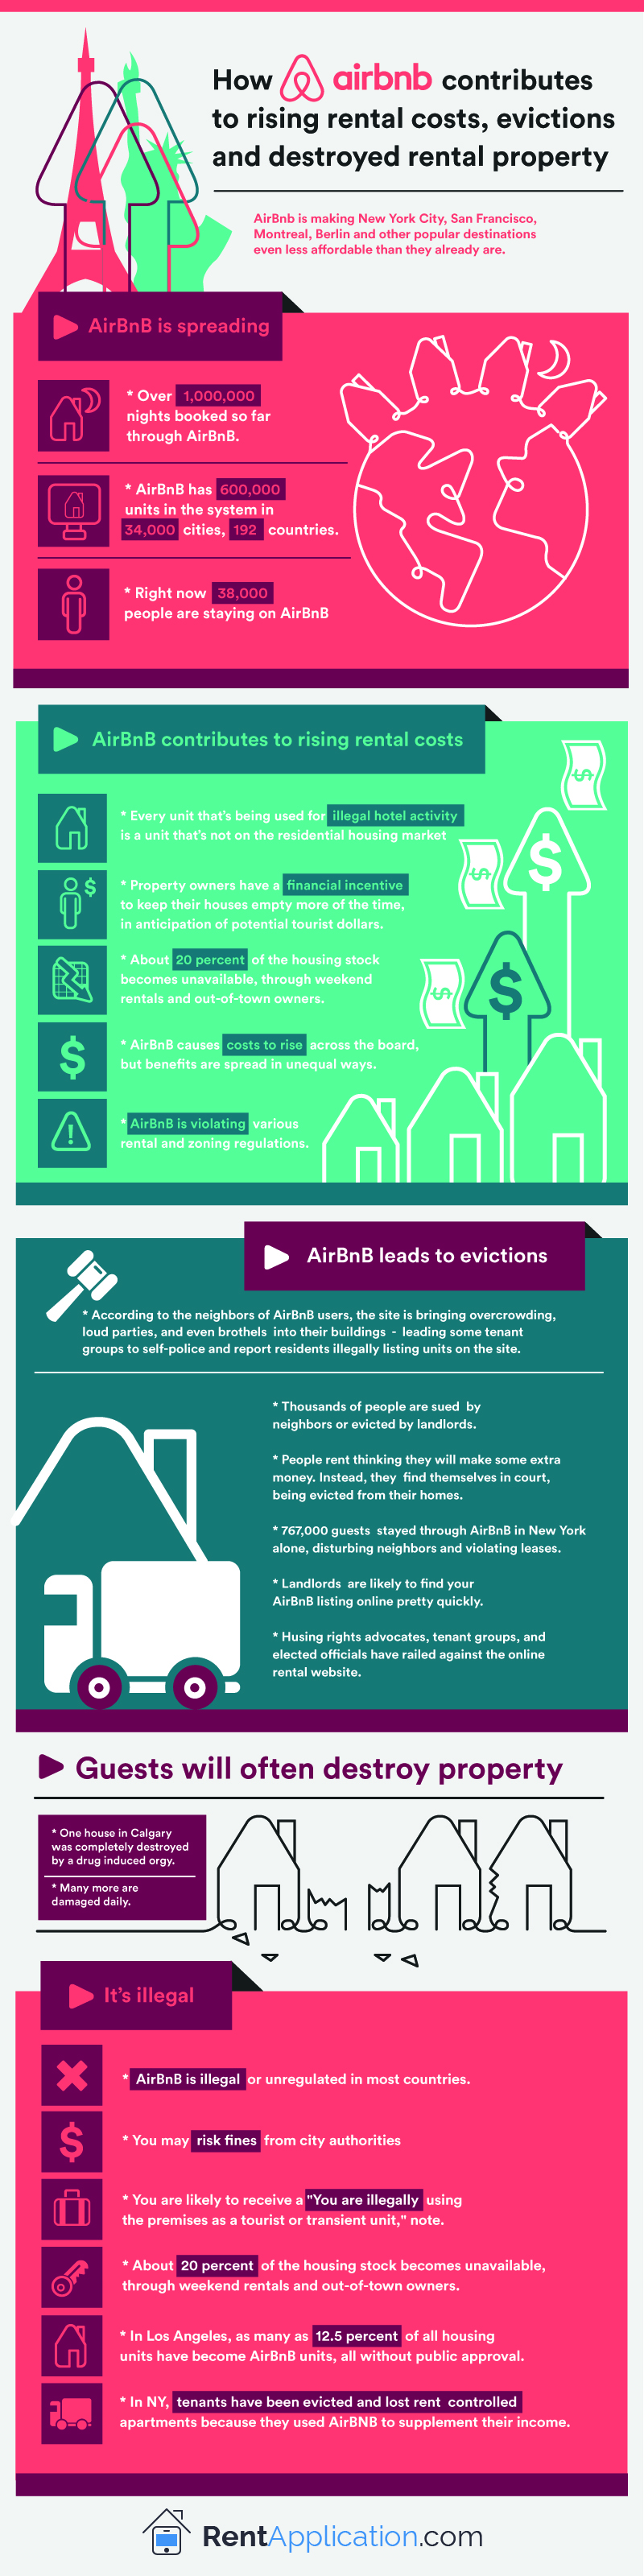 AirBnb_infographic